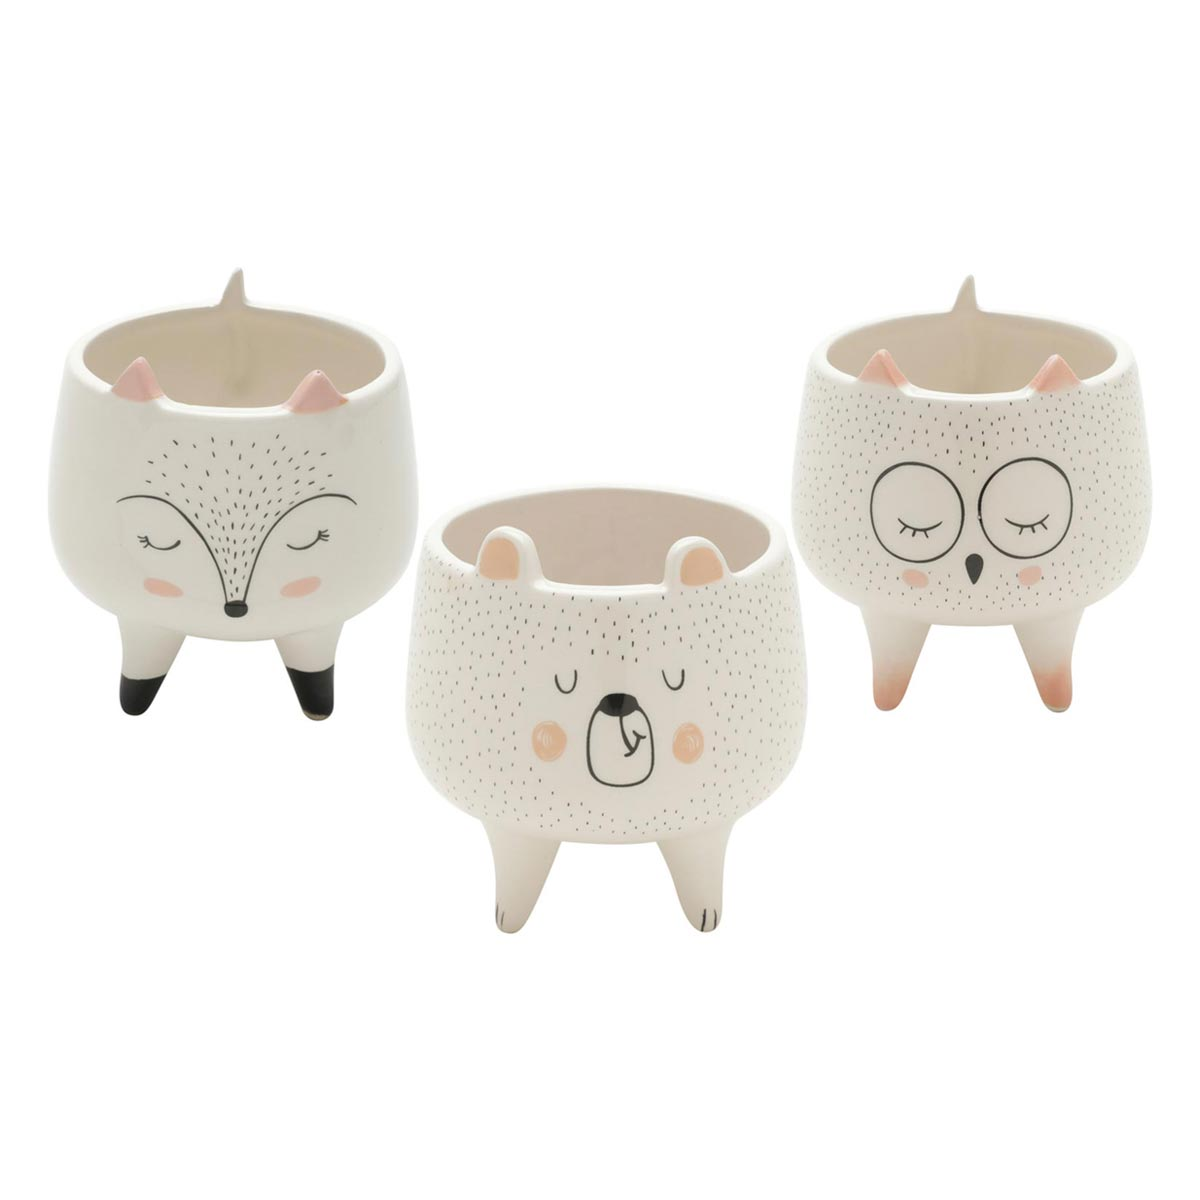 Kit 3 Cachepots Pequeno Vaso Sleeping Bear Fox e Owl - Urso Raposa e Coruja